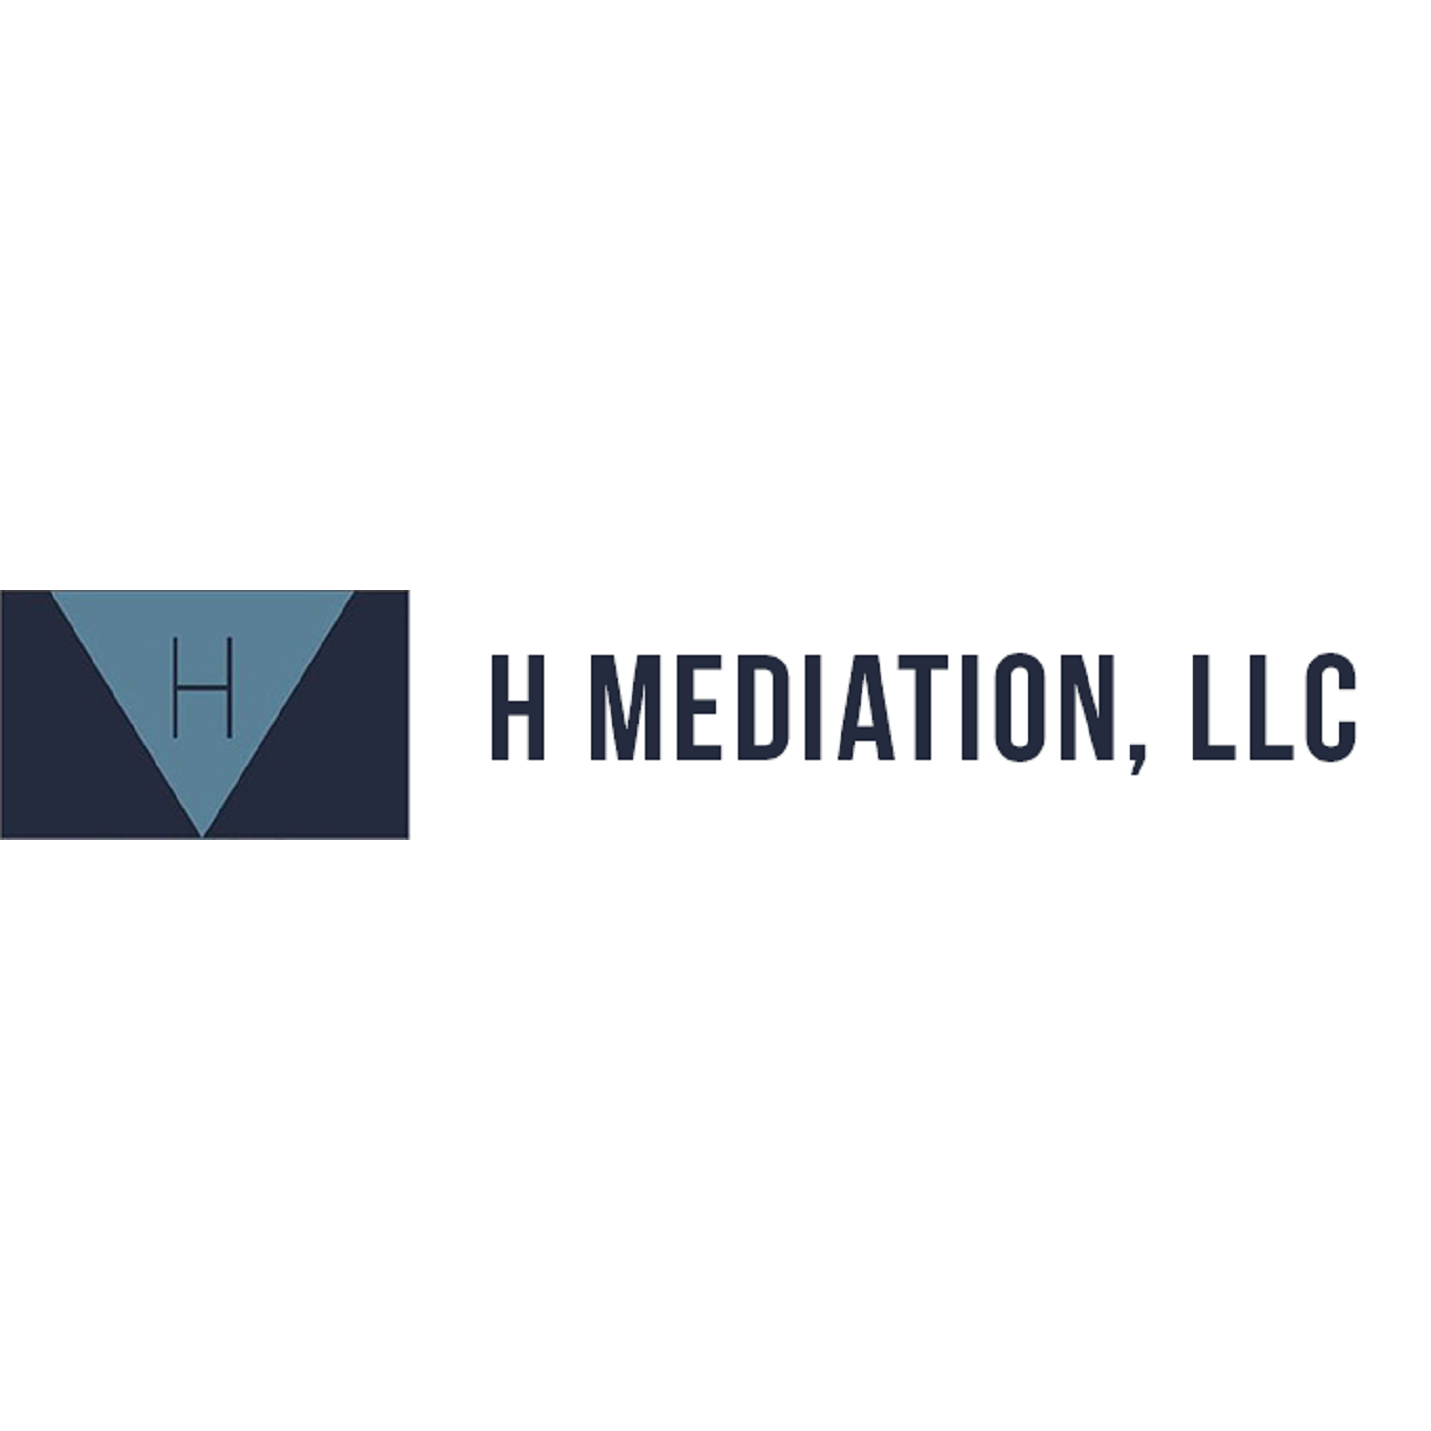 H Mediation, LLC